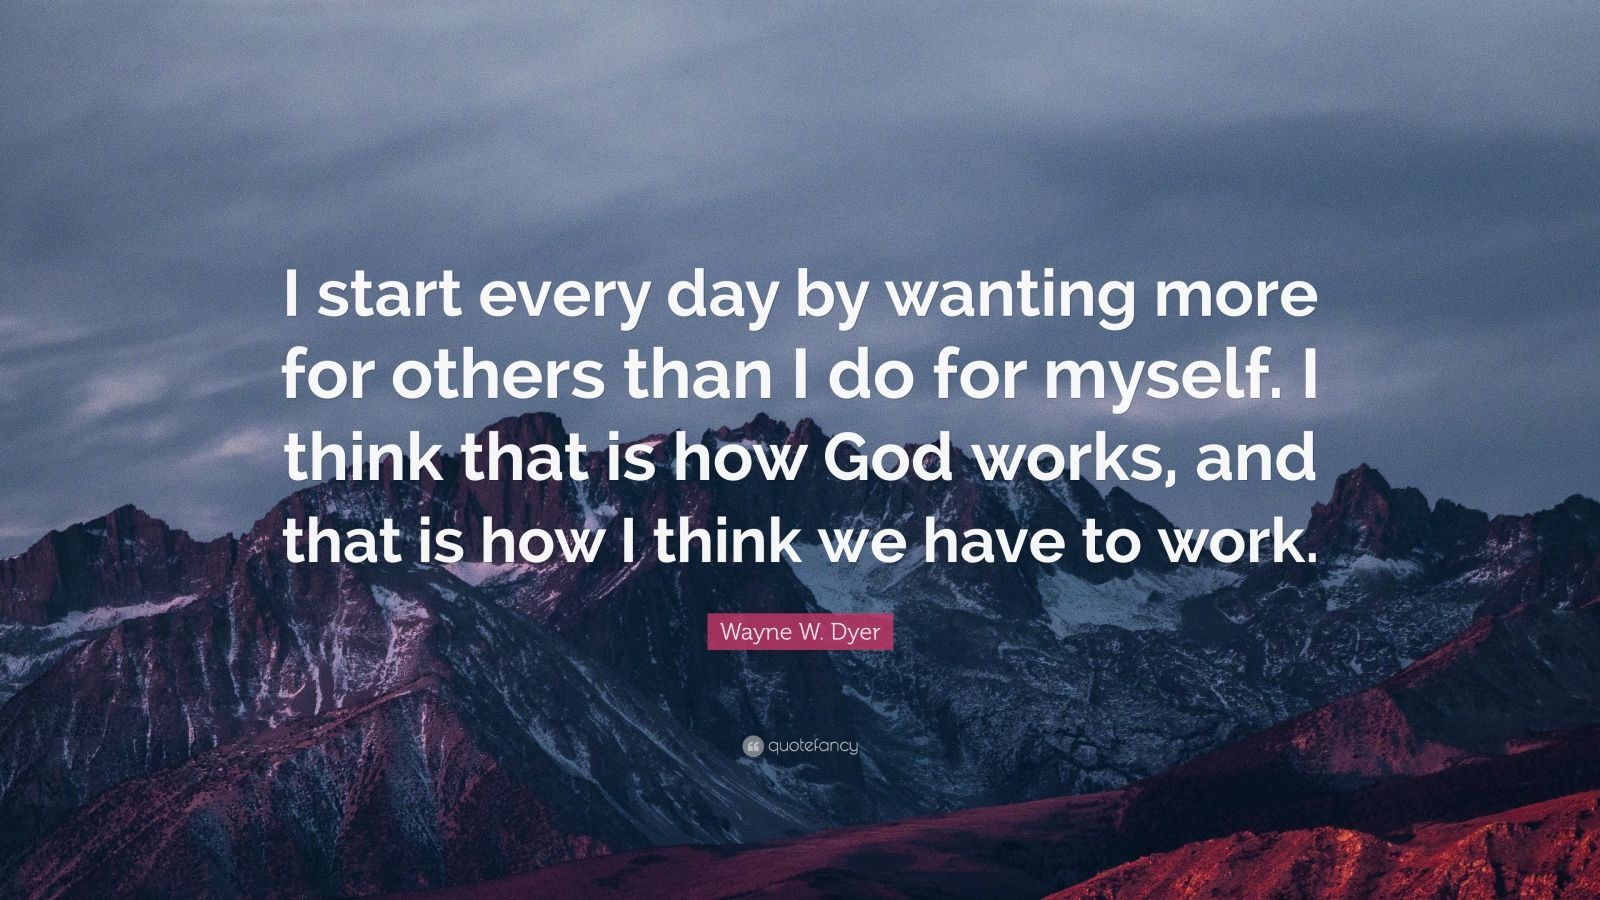 "Wayne W. Dyer Quote: ""I start every day by wanting more for others than I do for myself. I think that is how God works, and that is how I think we have to work."""